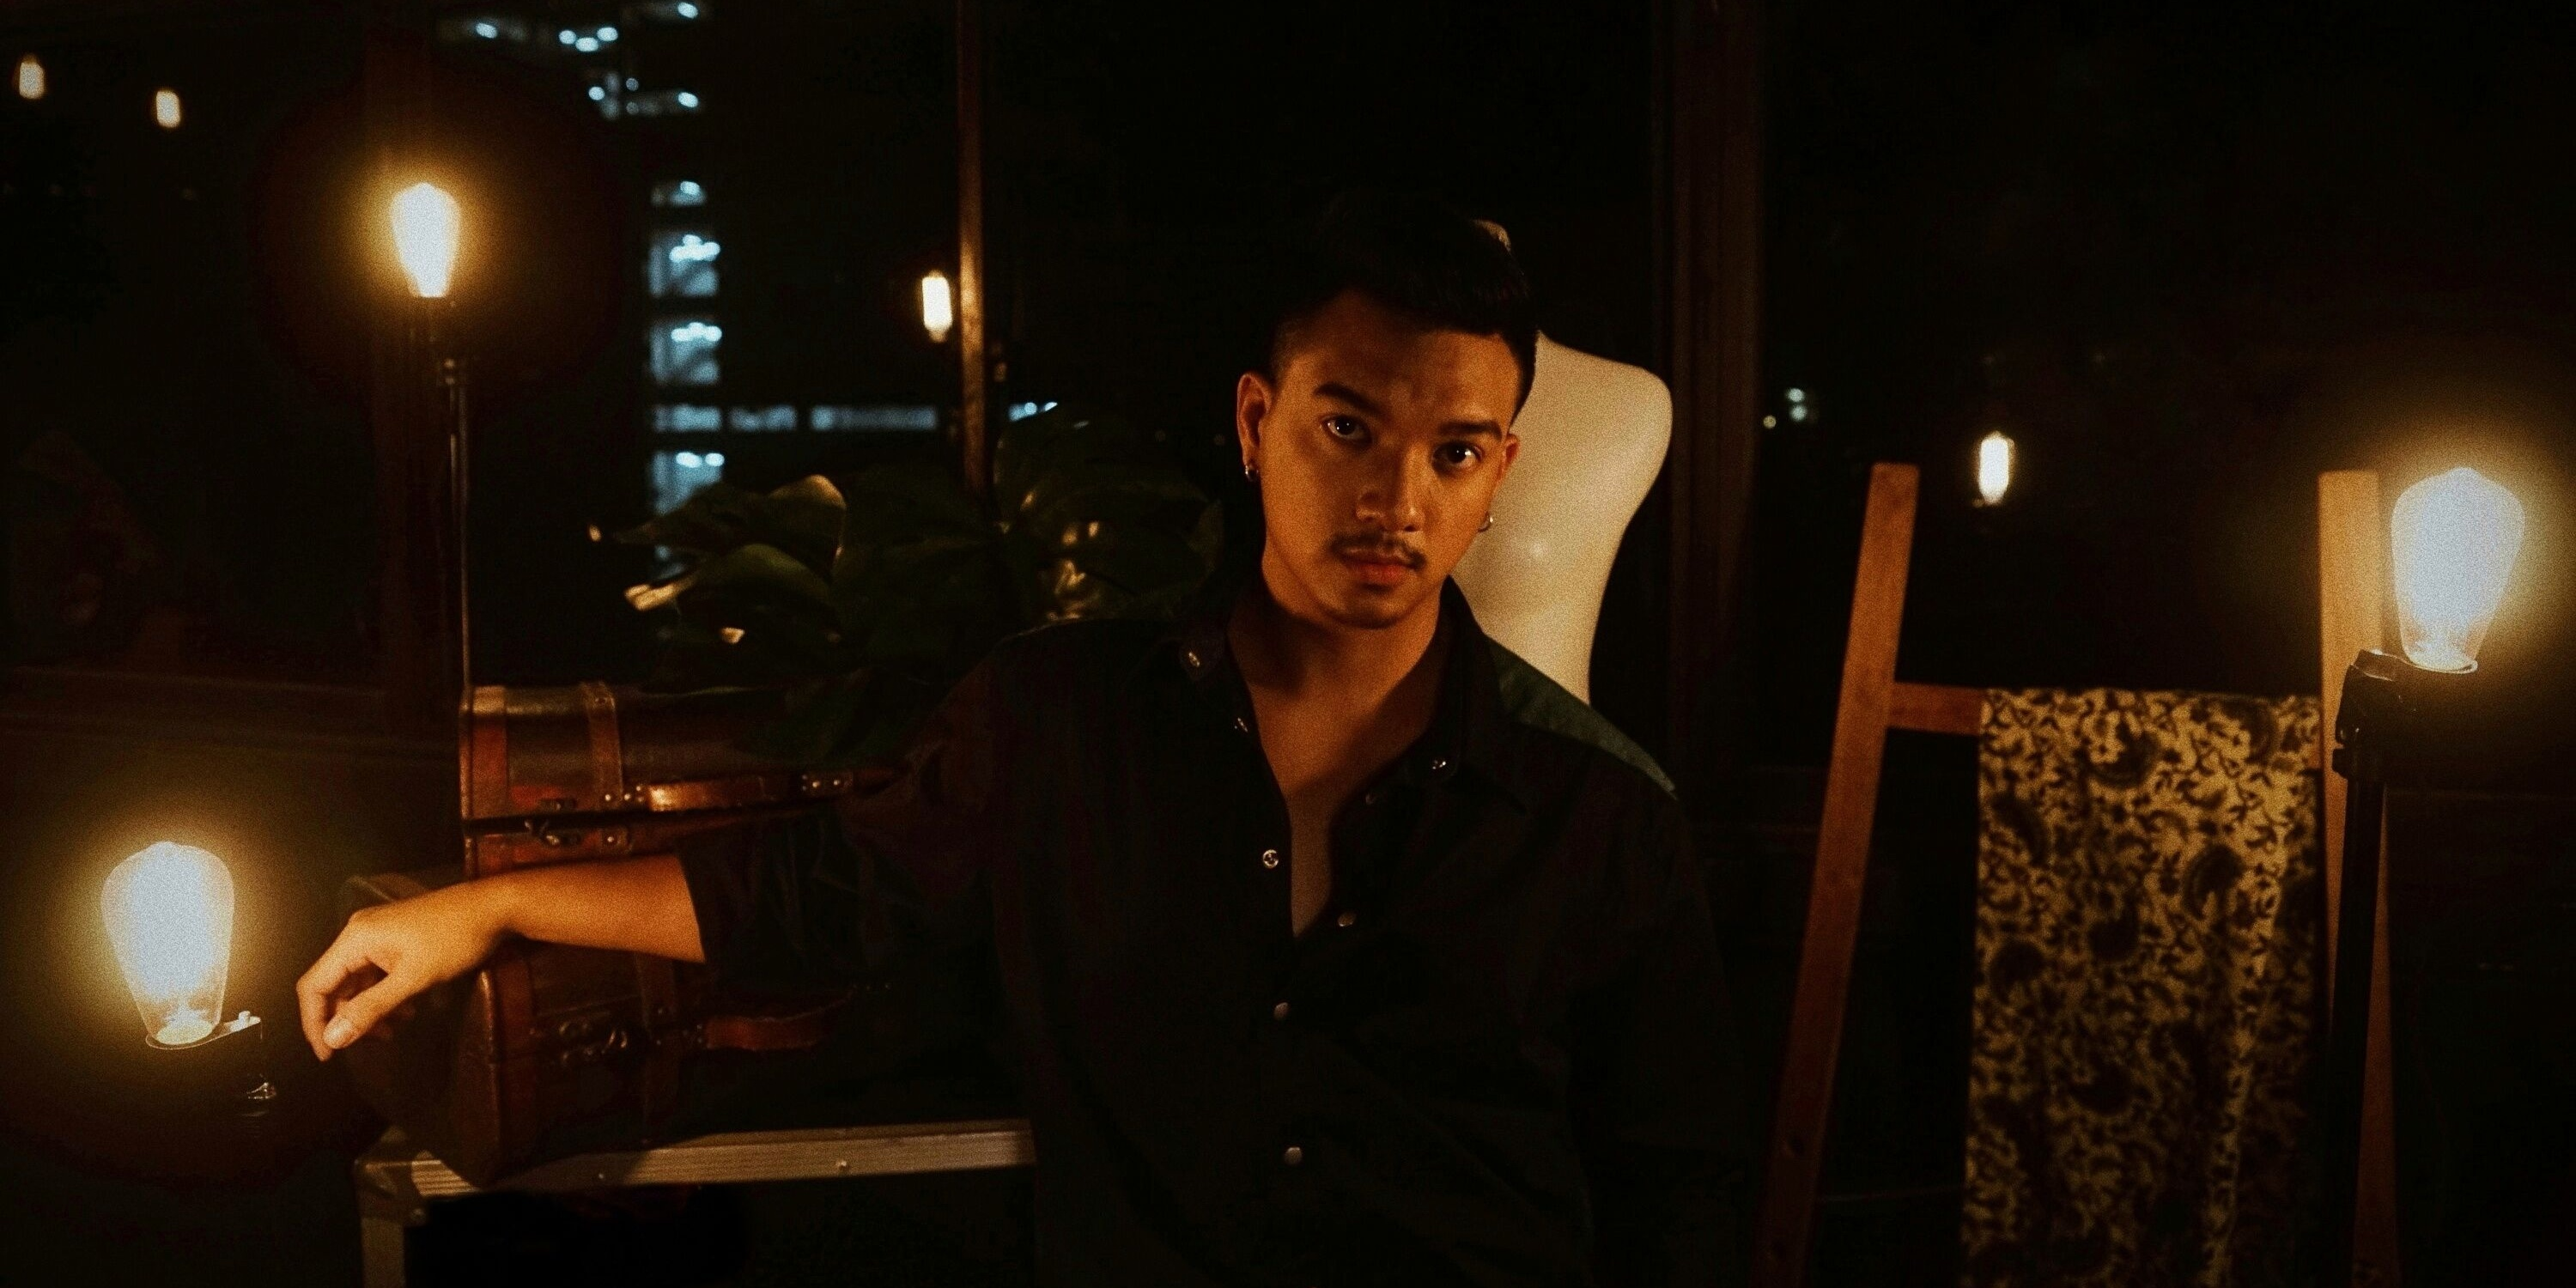 Gareth Fernandez premieres soulful music video for 'Achilles' – watch